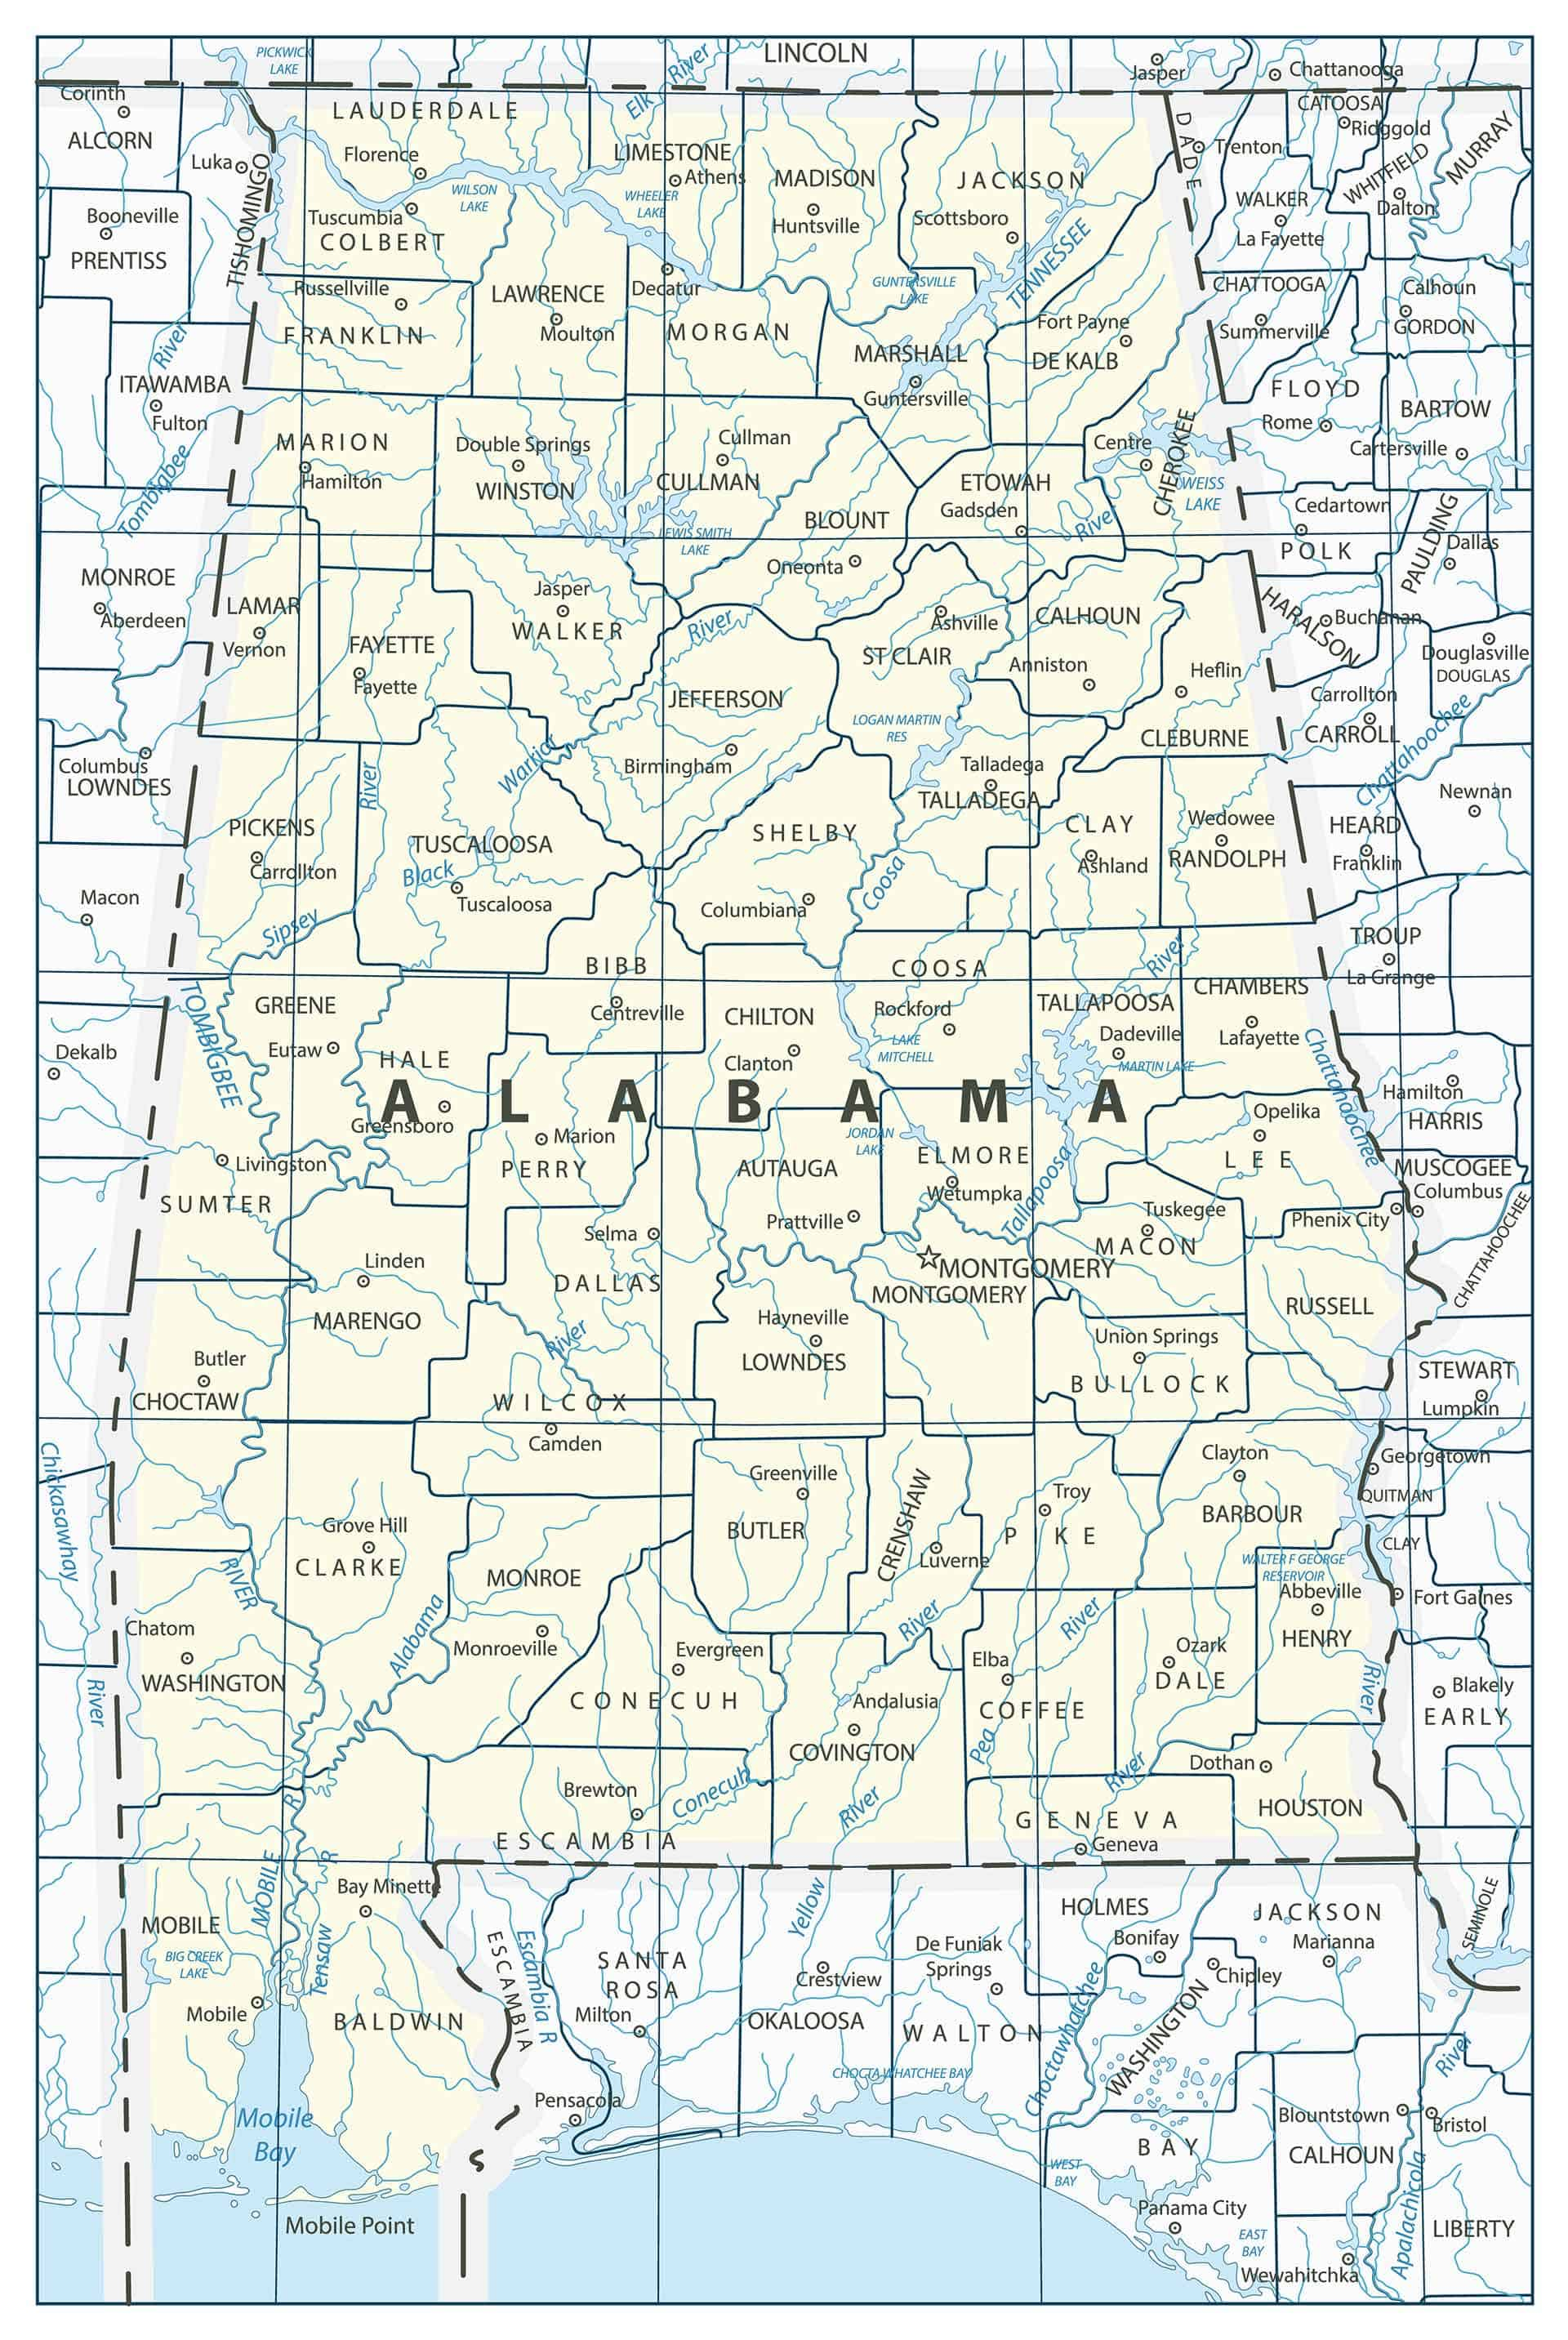 History and Facts of Alabama Counties - My Counties